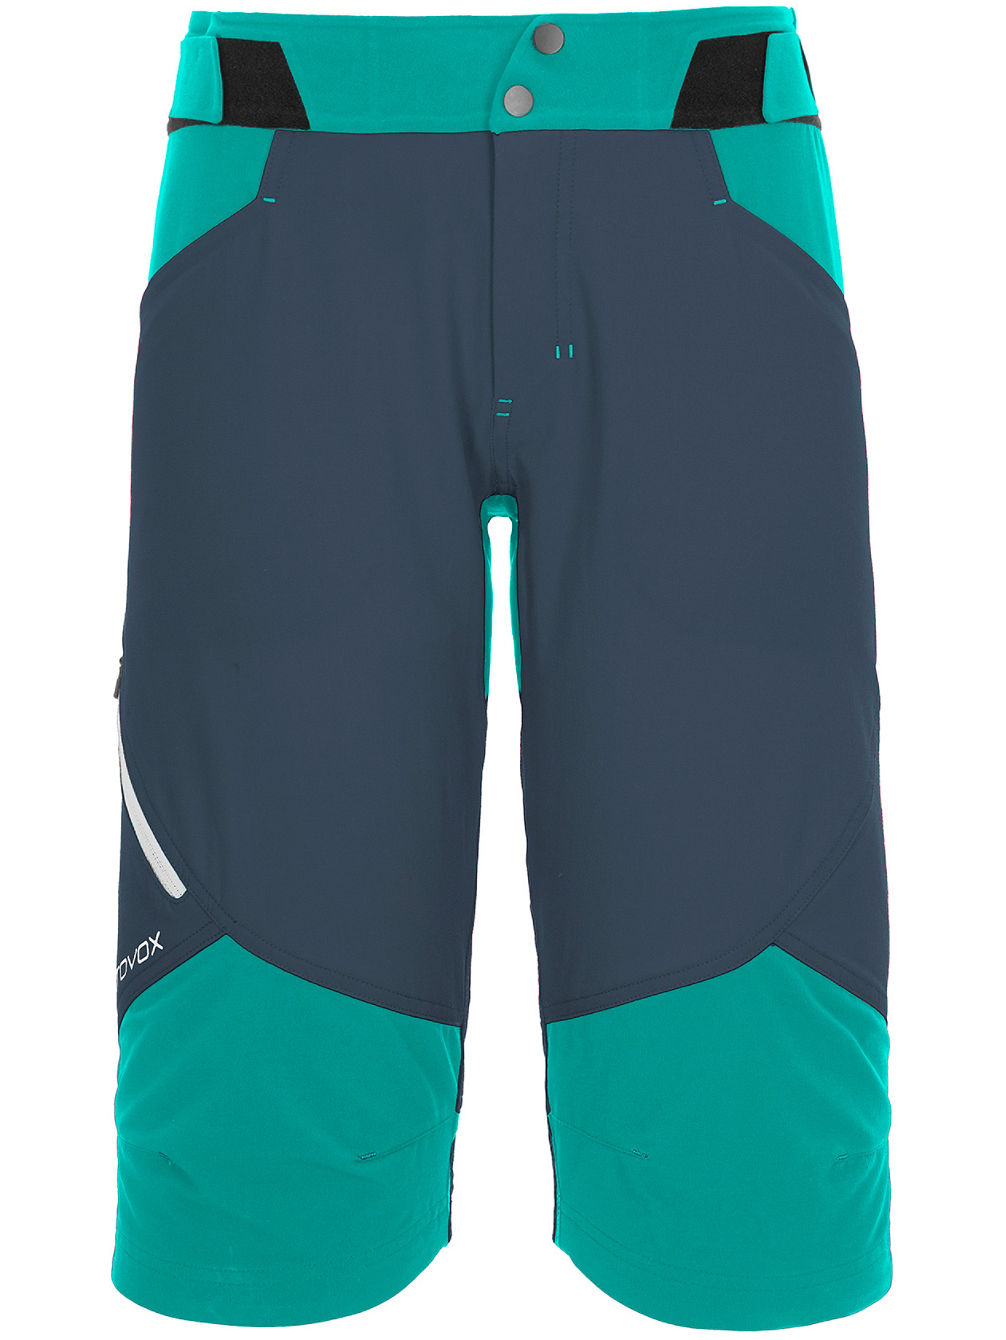 ortovox-pala-short-outdoor-pants